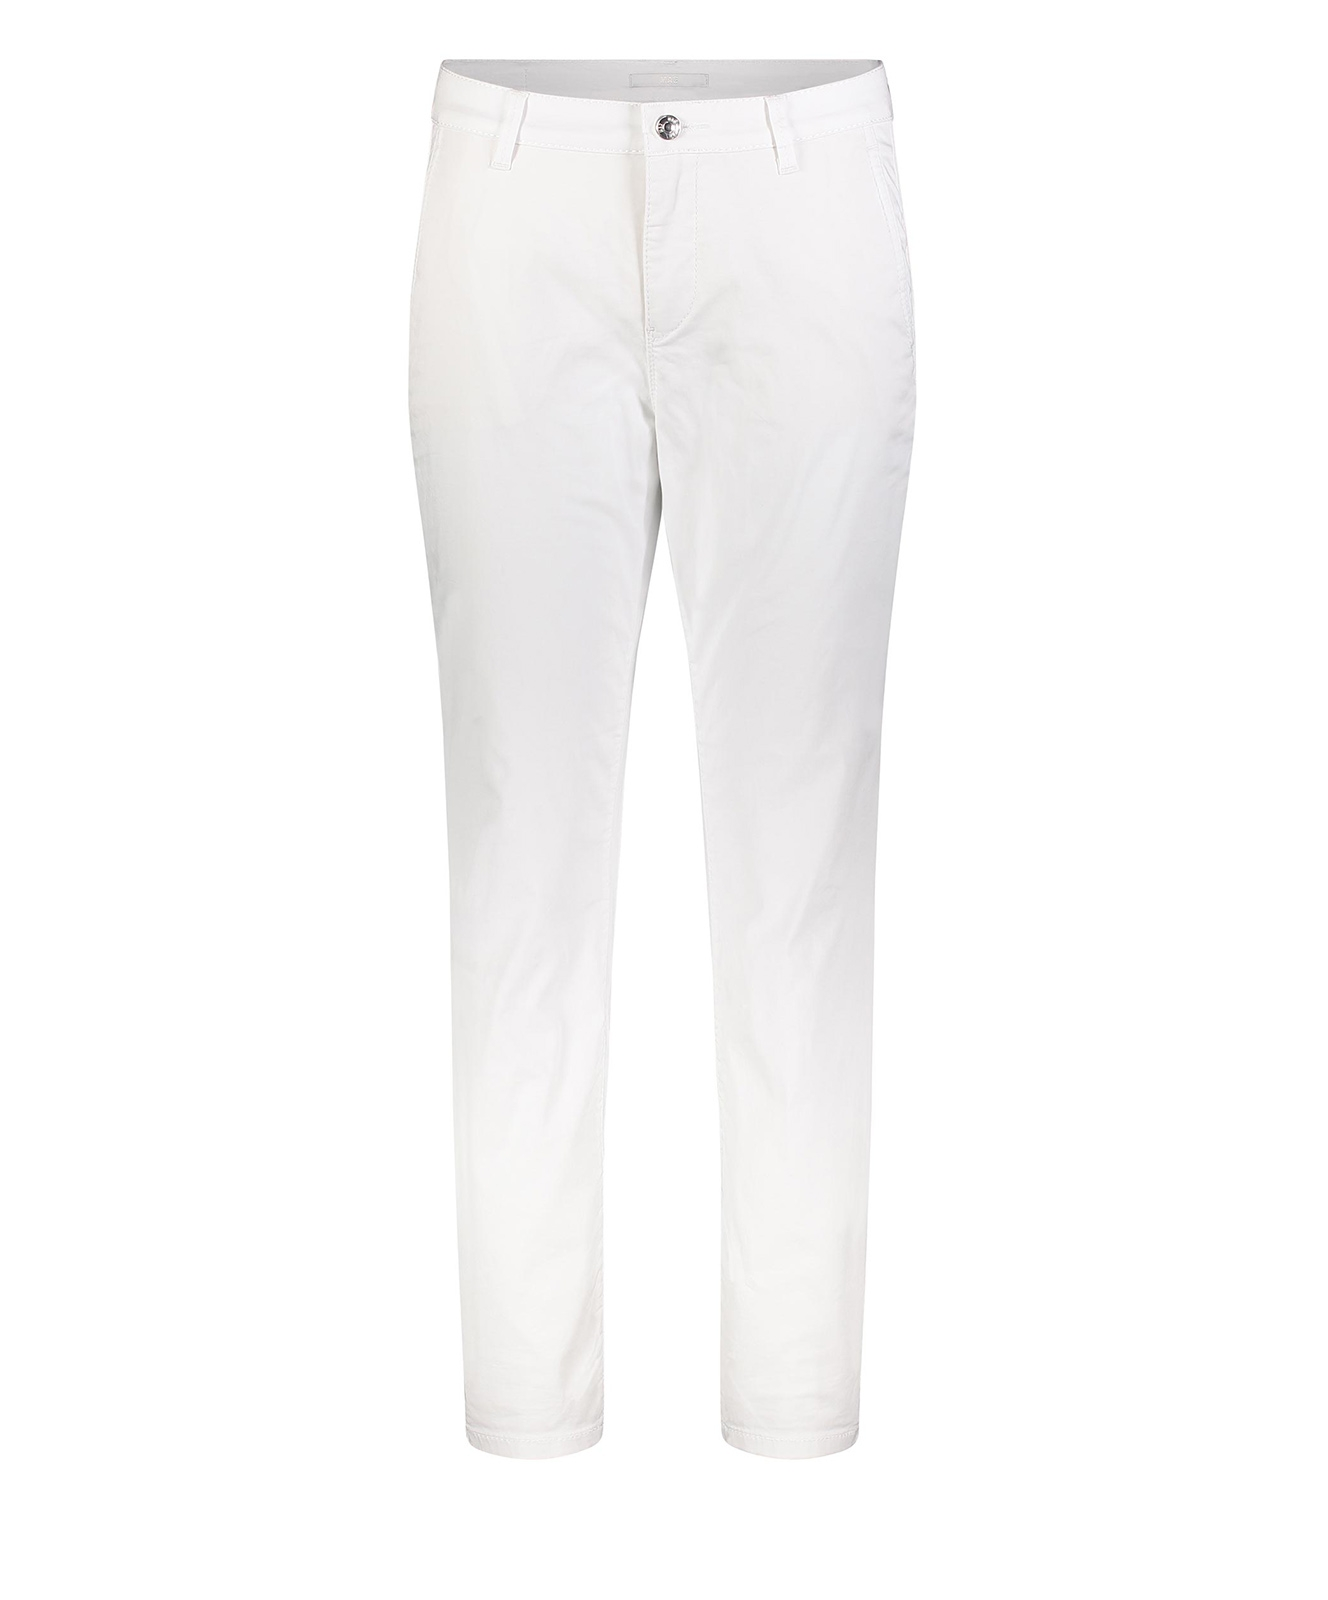 MAC Chino - Relaxed Slim Fit - White-D32 / L28